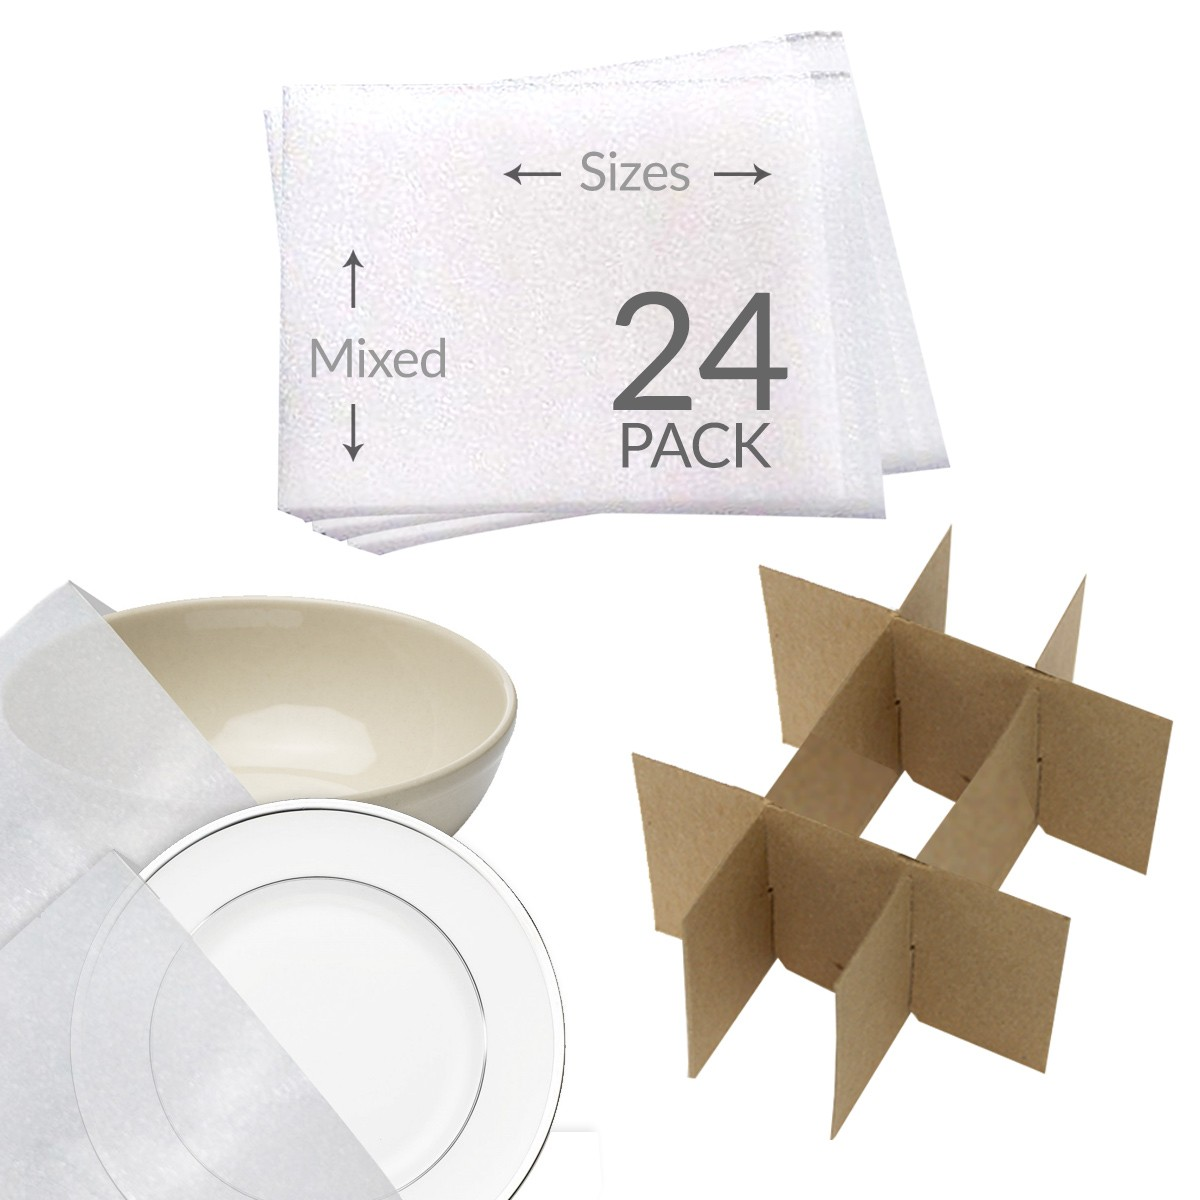 Moving Supplies Foam Wrap Dish Cell Divider Kit Amp Foam Pouches